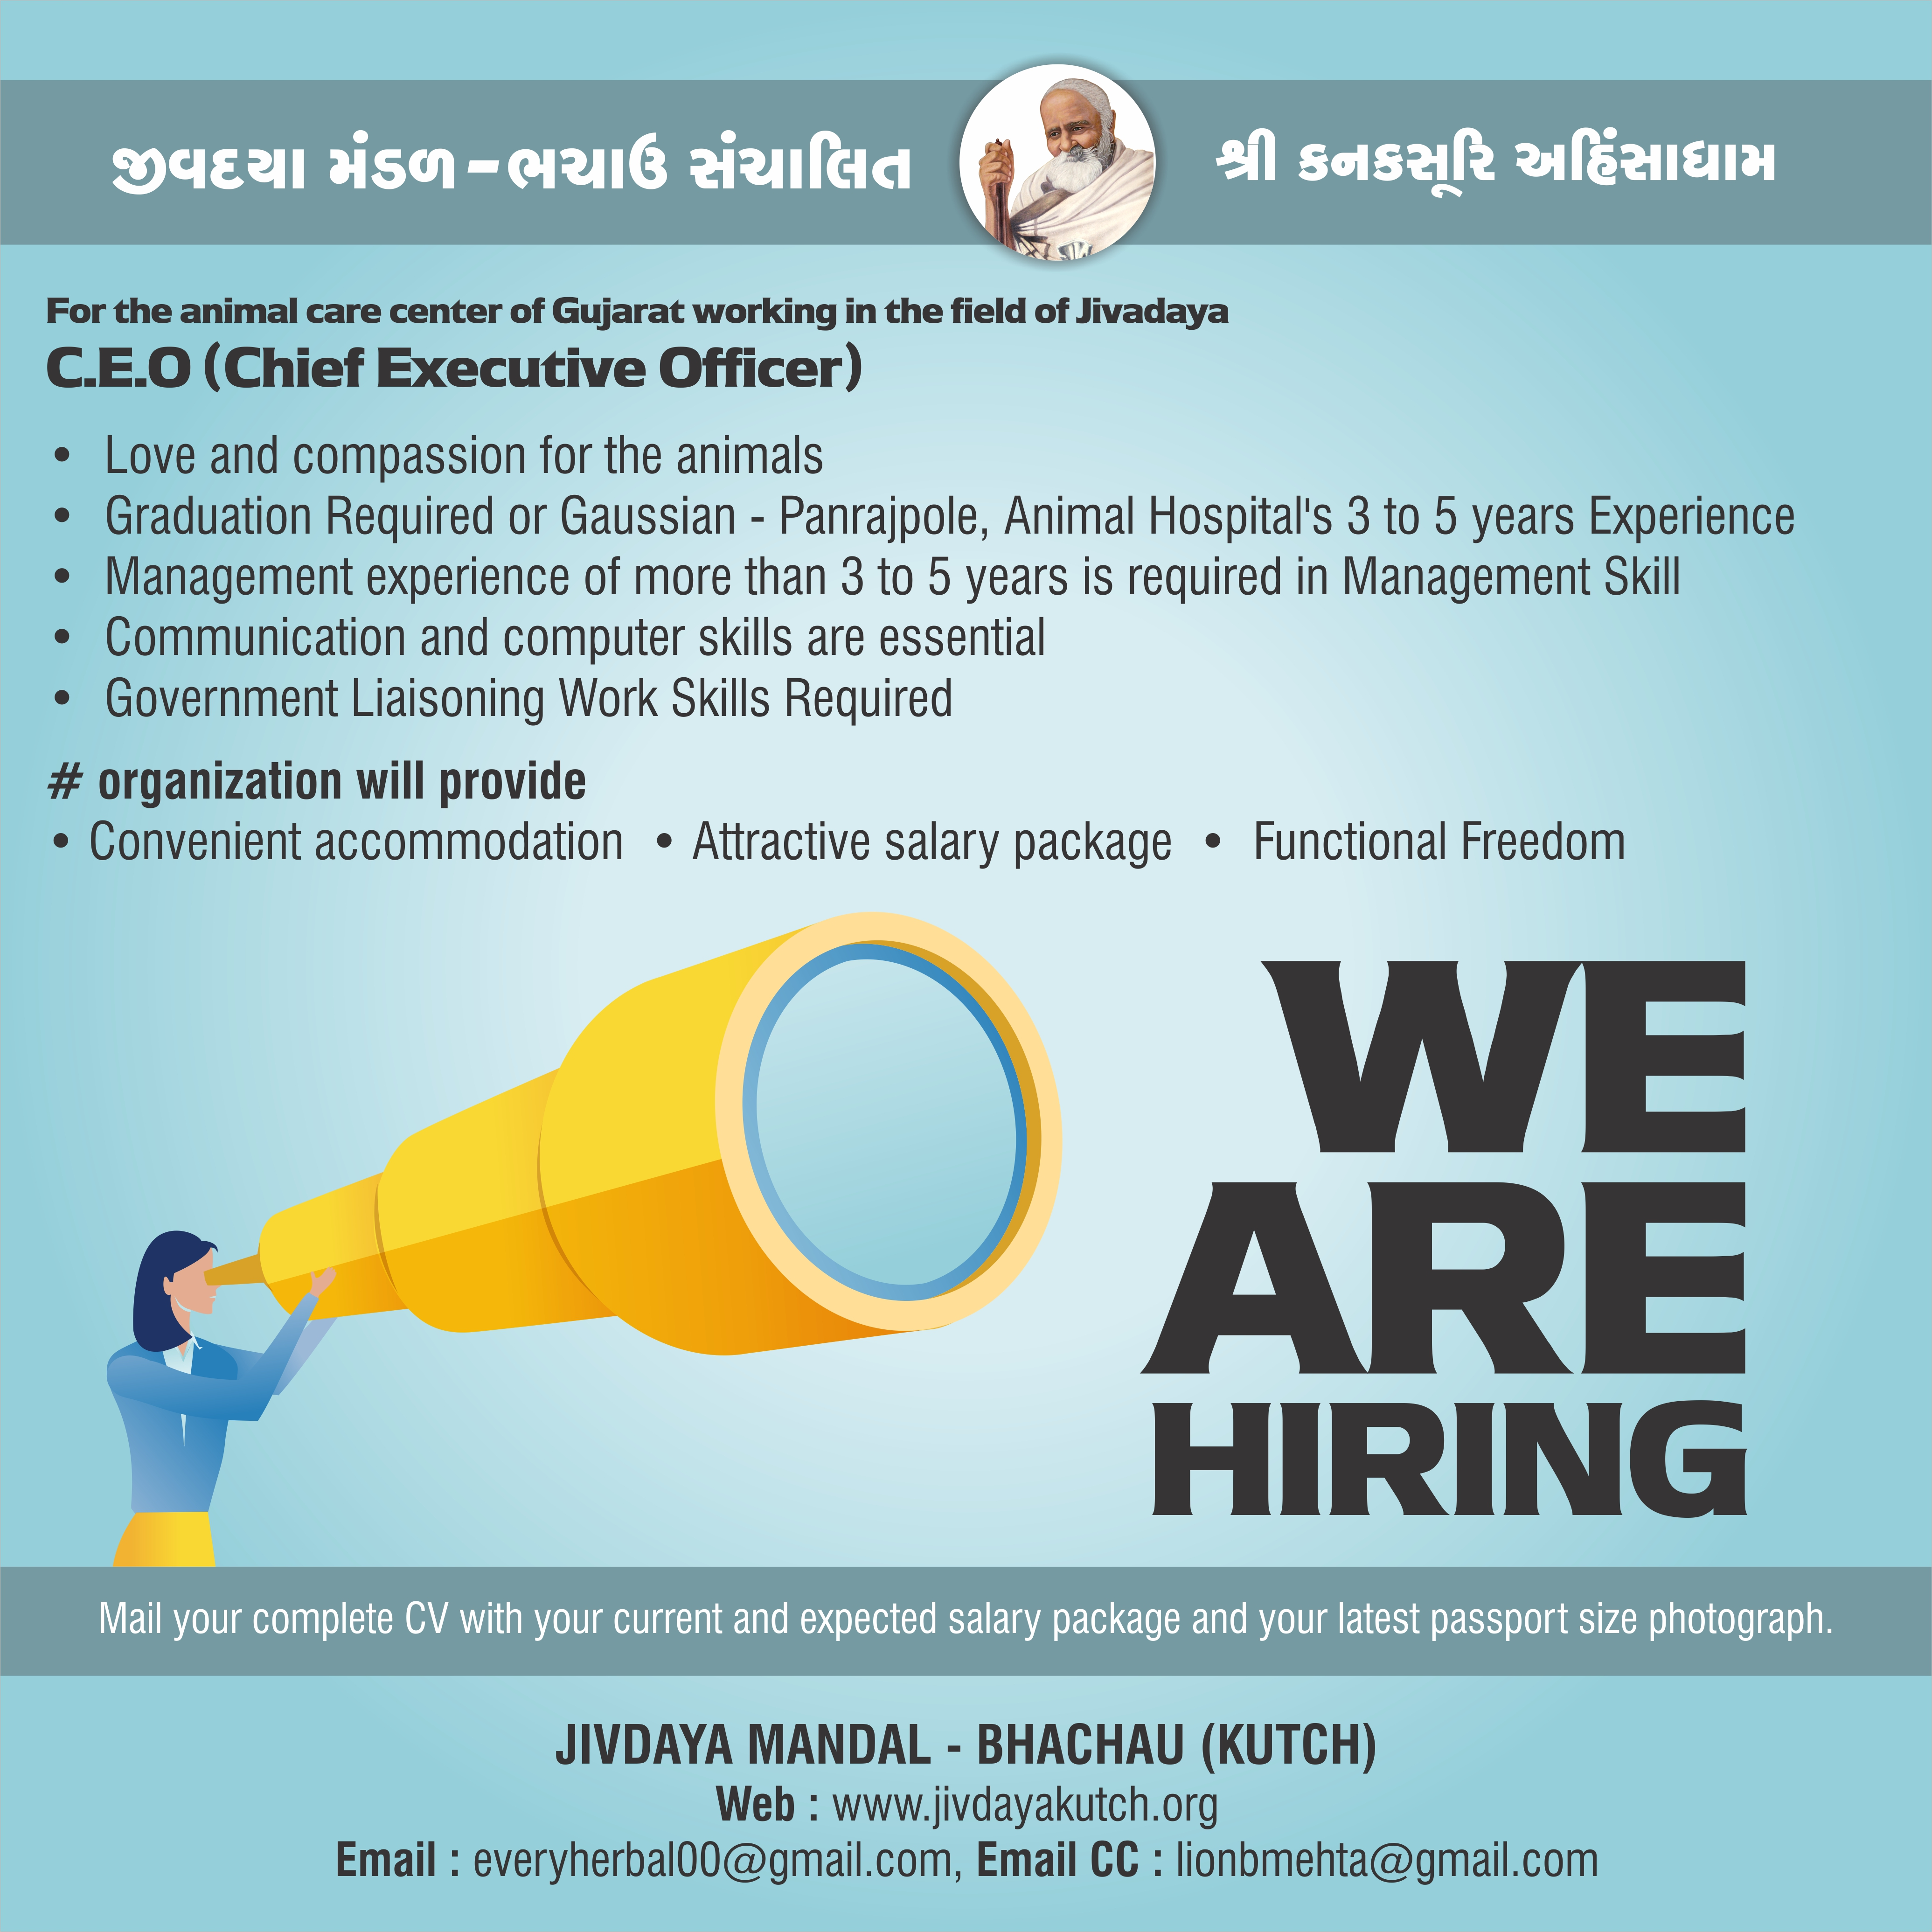 Tachukdi - EXECUTIVE JOB in ahmedabad